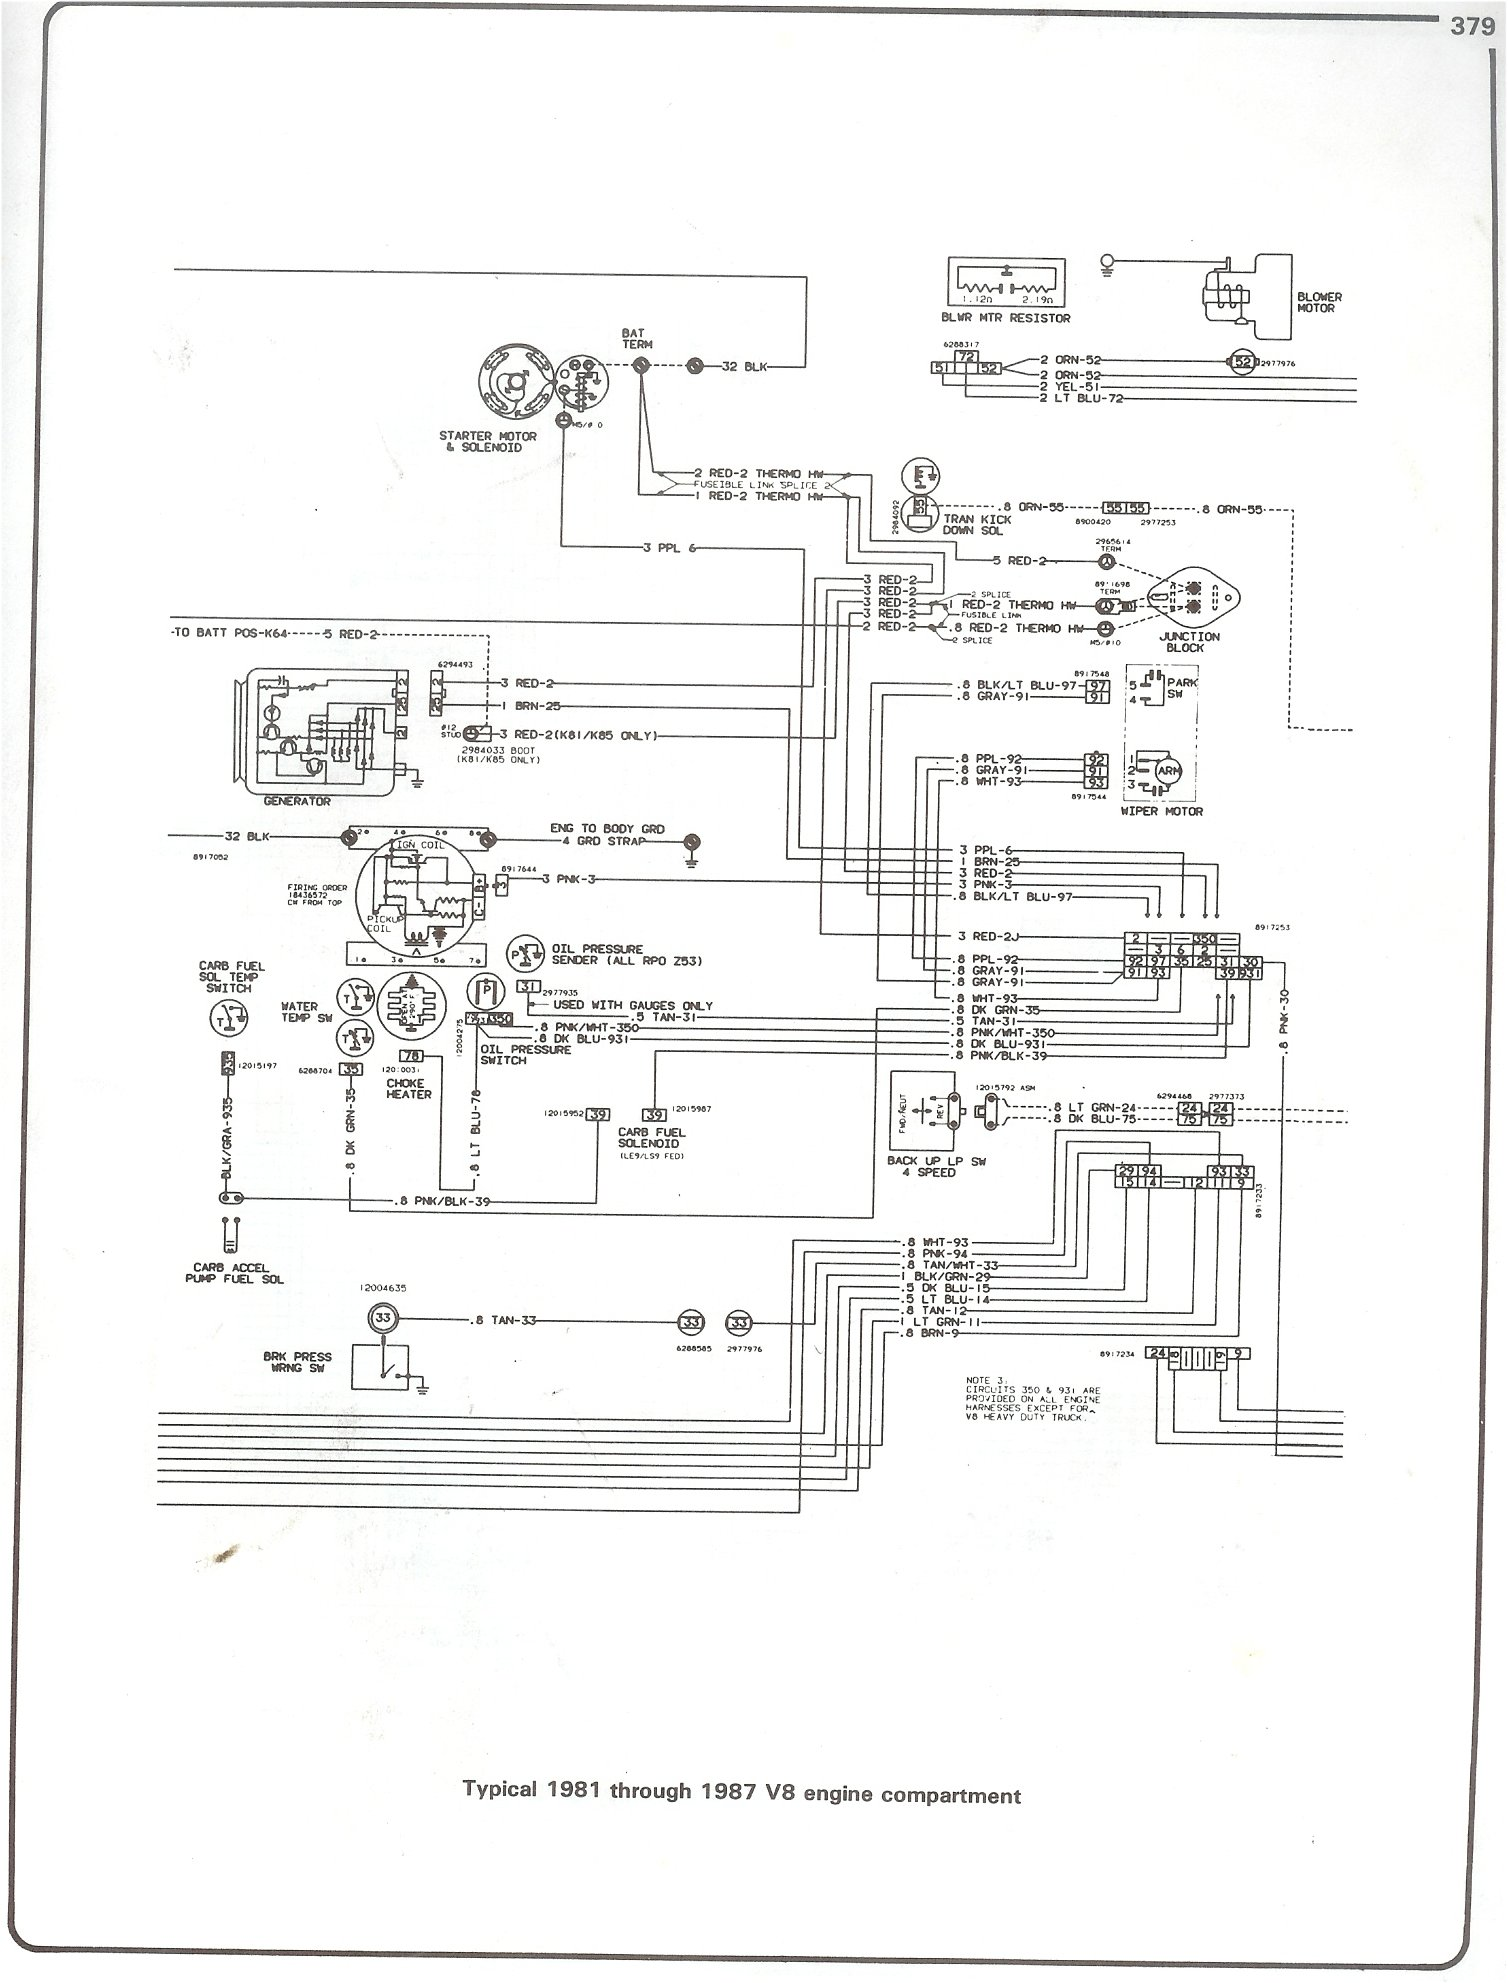 87 Rx7 Fuse Box Wiring Diagram Master Blogs 83 Engine Library Rh 19 Webseiten Archiv De 84